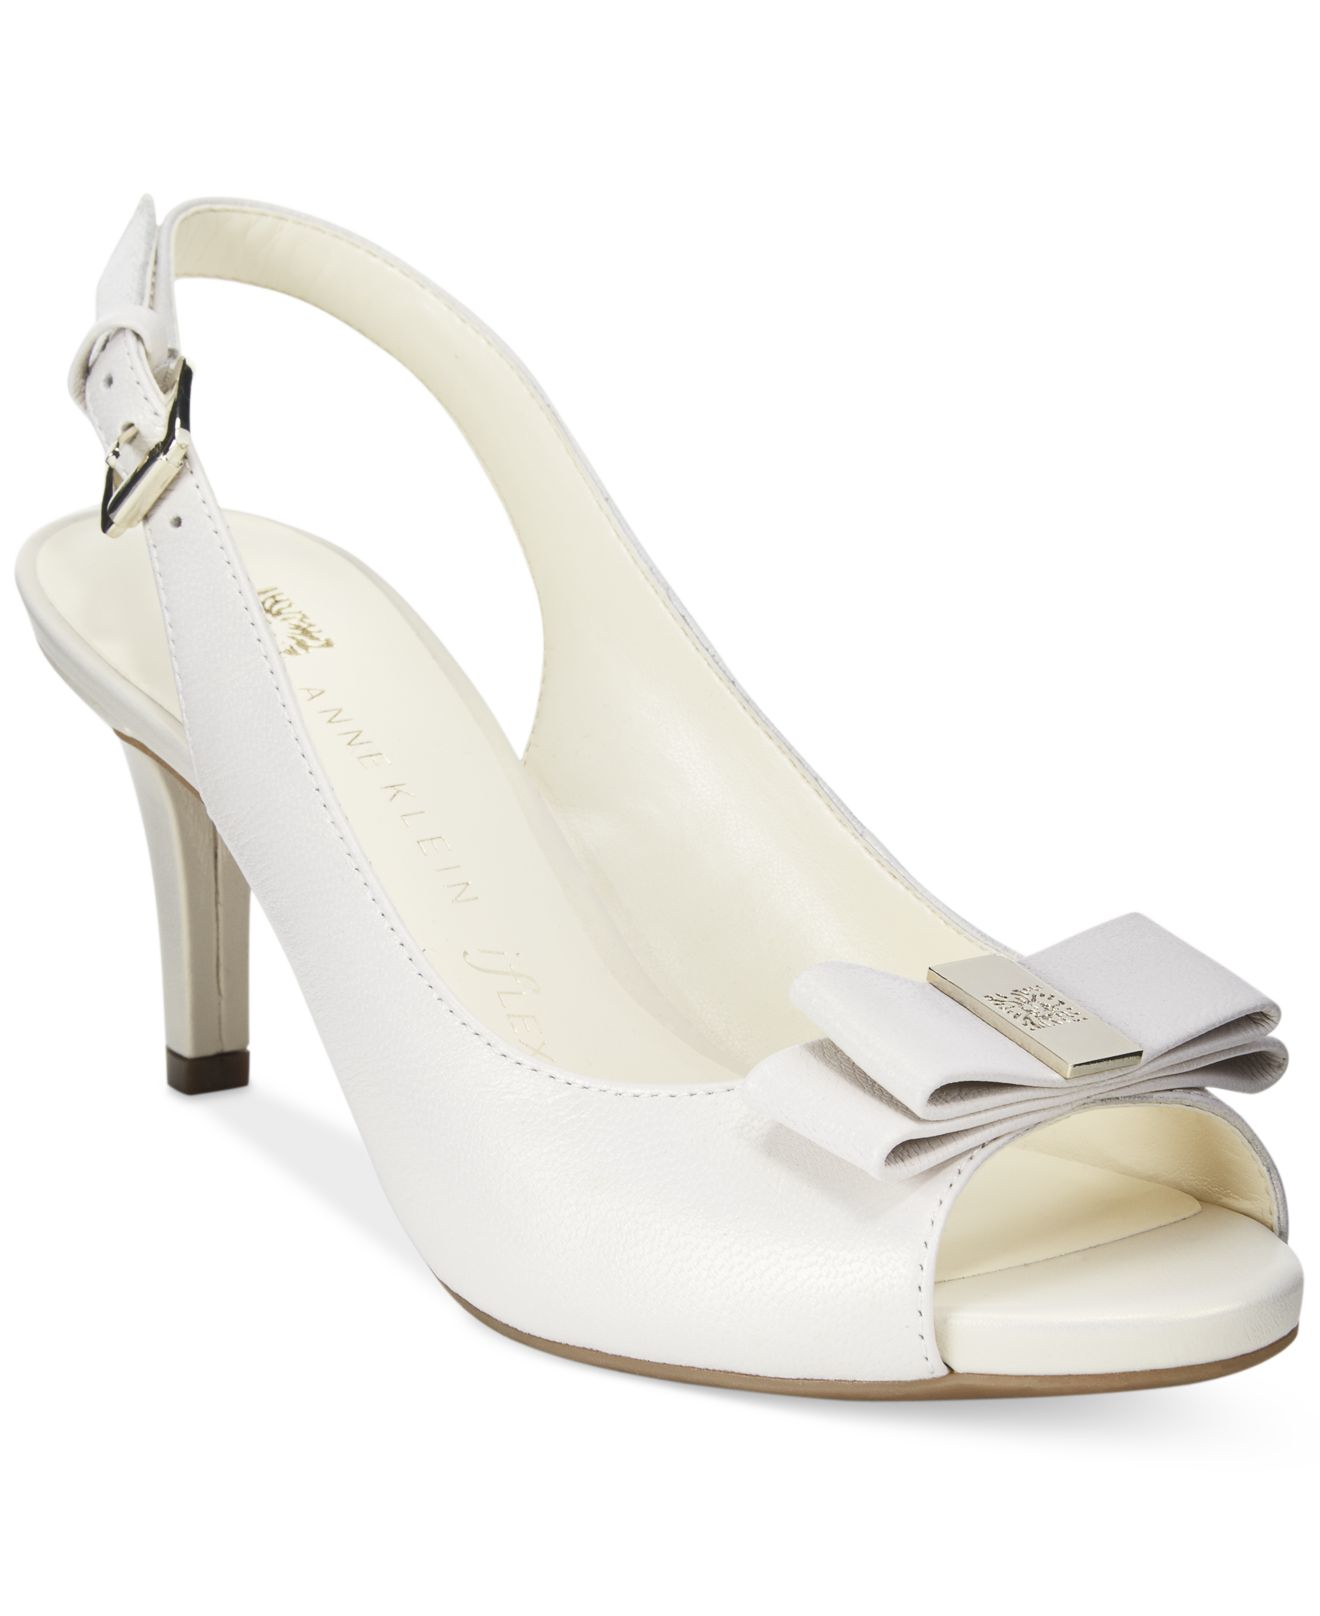 8625025a03b Lyst - Anne Klein Stephania Slingback Pumps in White